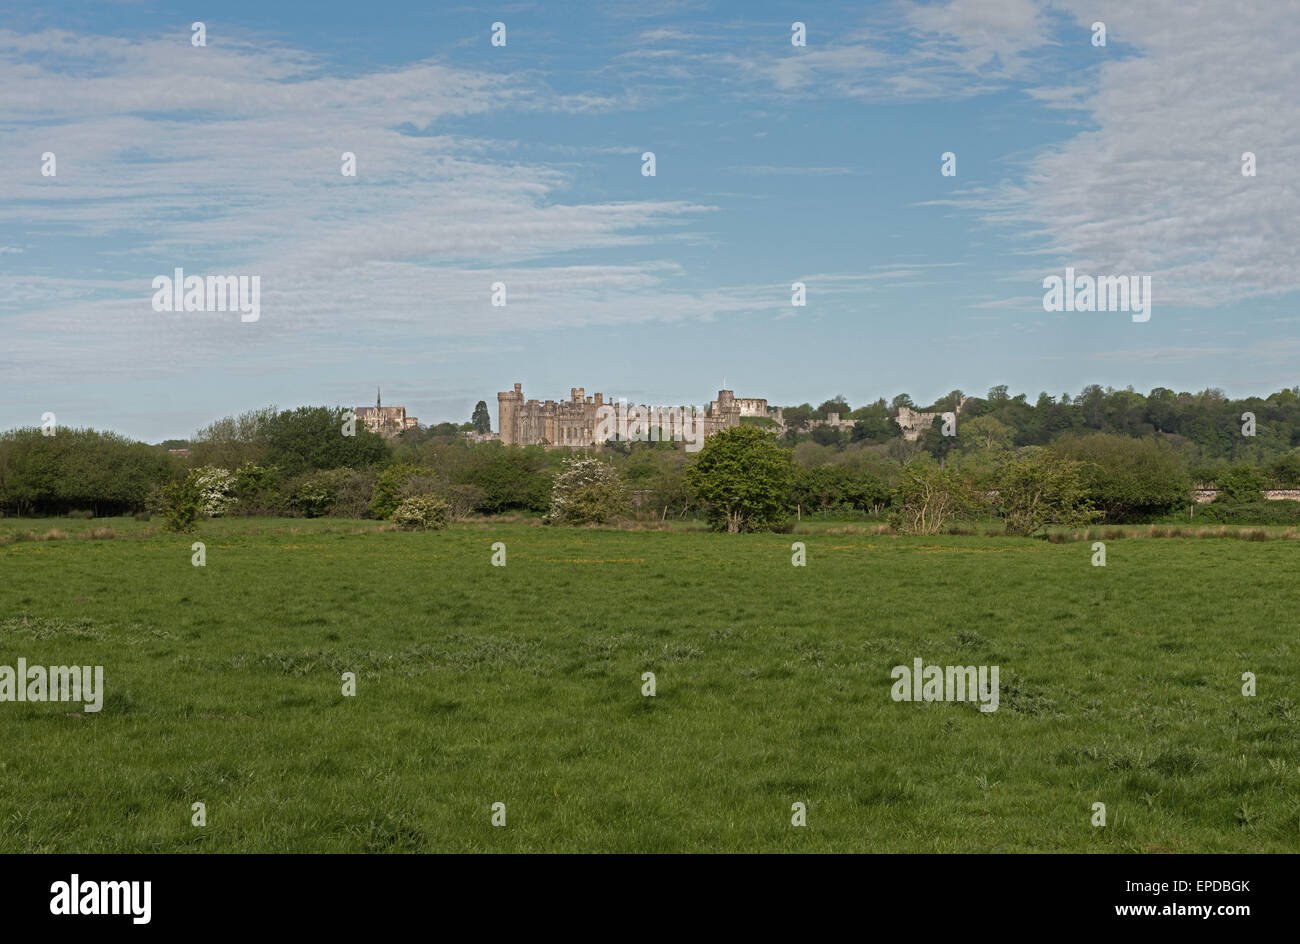 Castello di Arundel, West Sussex, in Inghilterra, Regno Unito, GB Immagini Stock